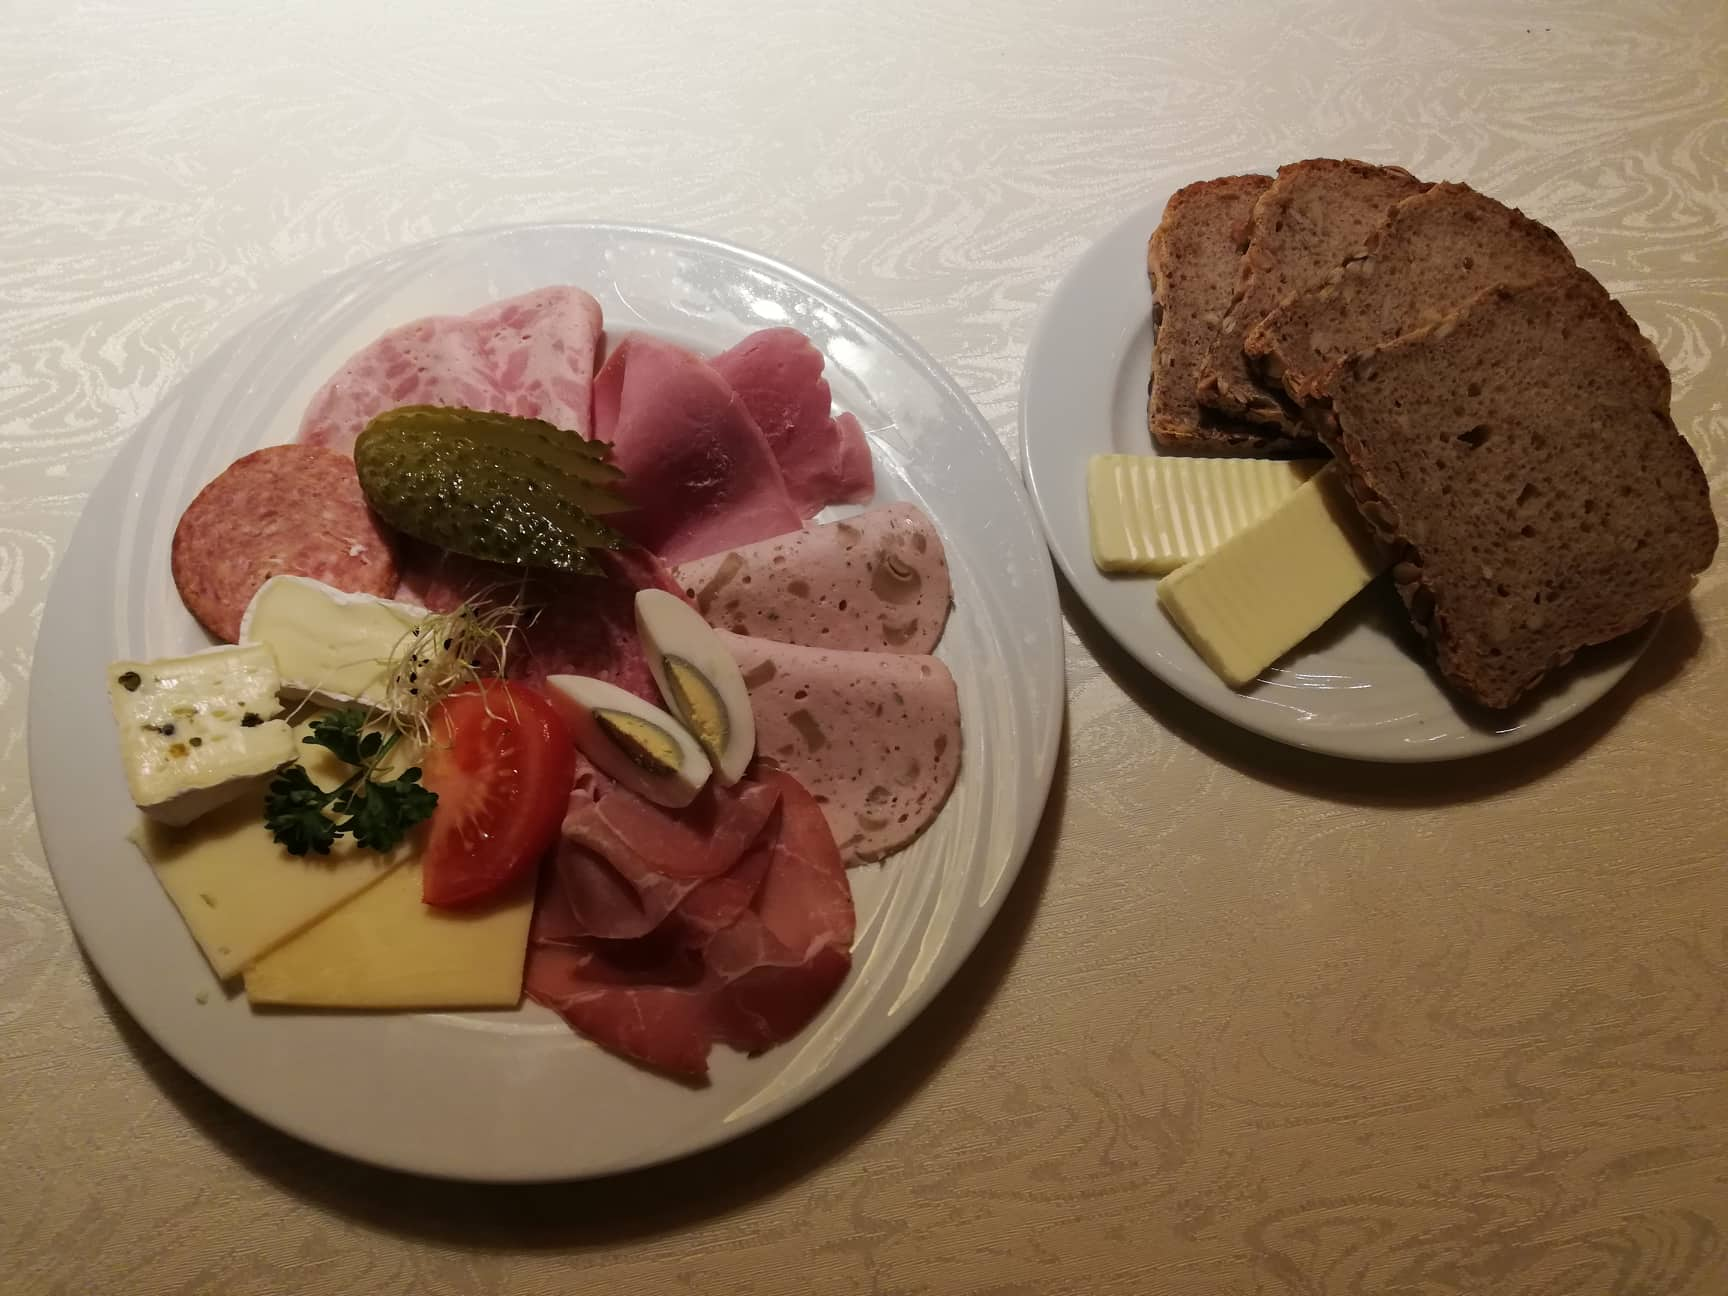 Sausage and cheese plate